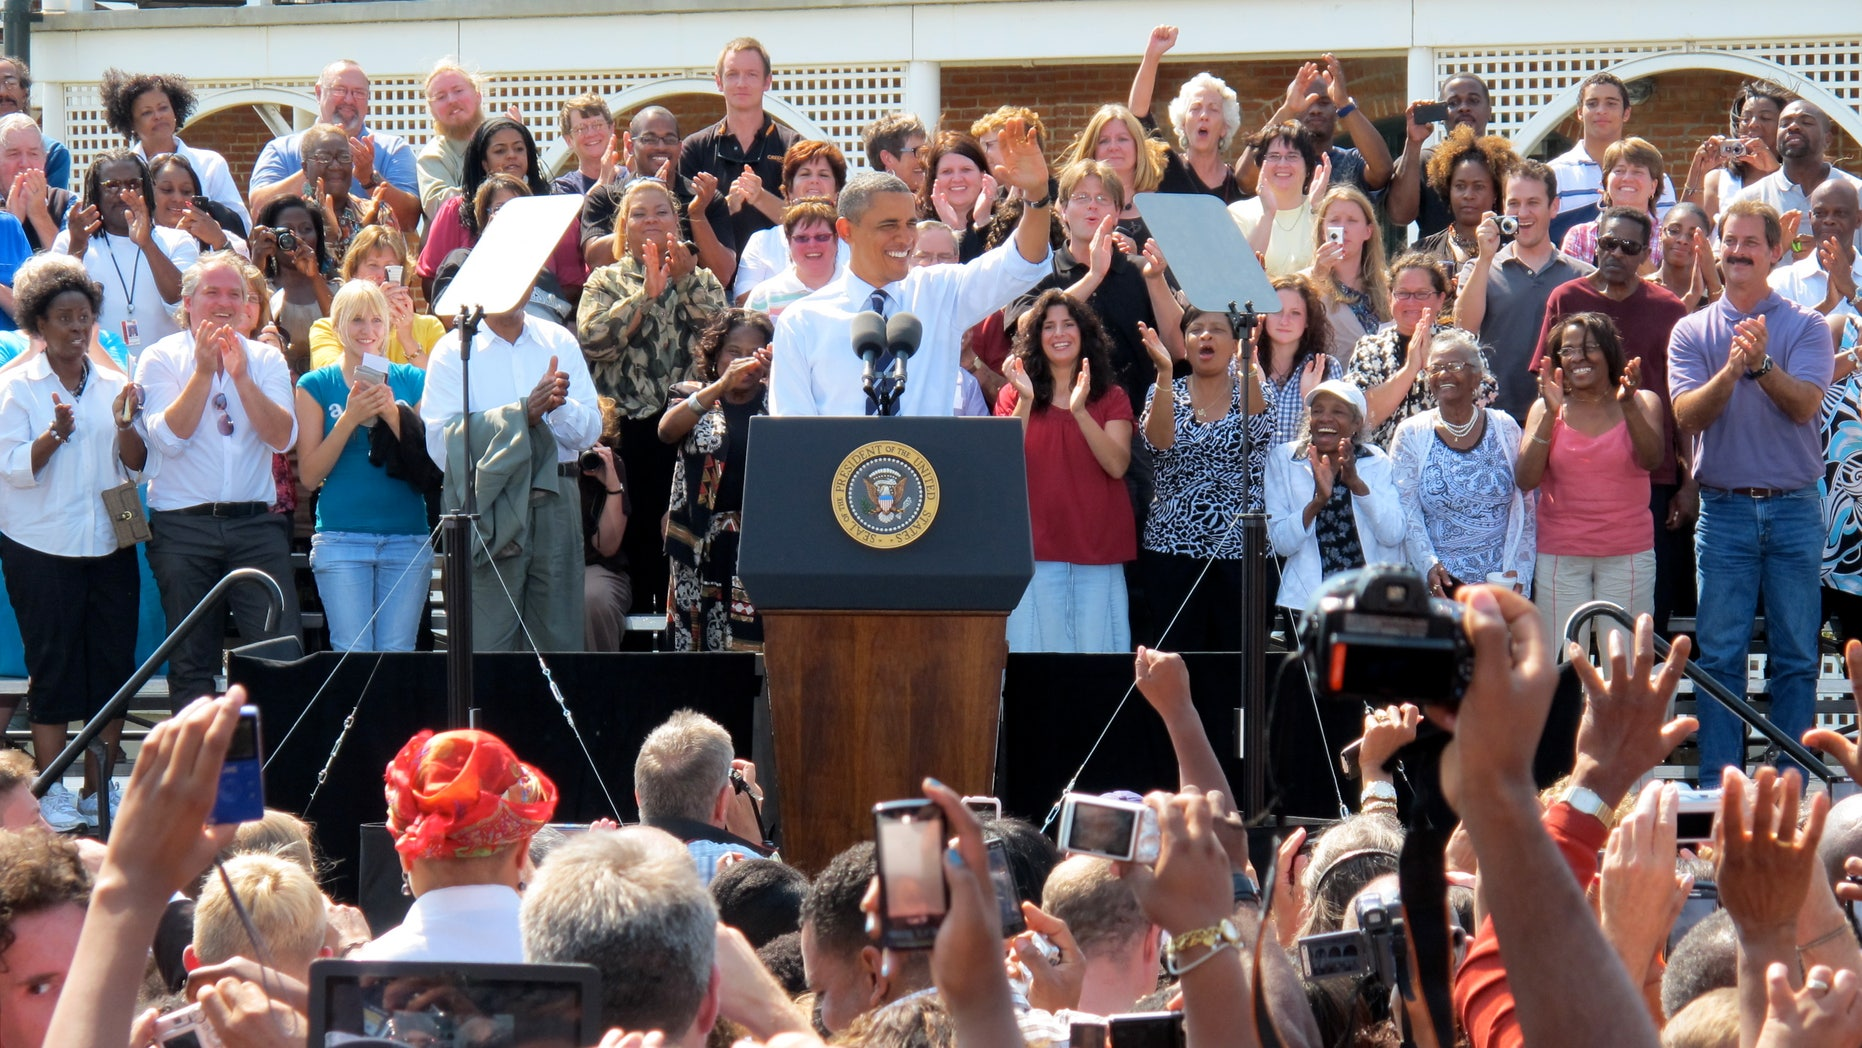 Tuesday: President Obama waves to supporters during an event at Fort Hayes Arts and Academics High School in Columbus, Ohio.